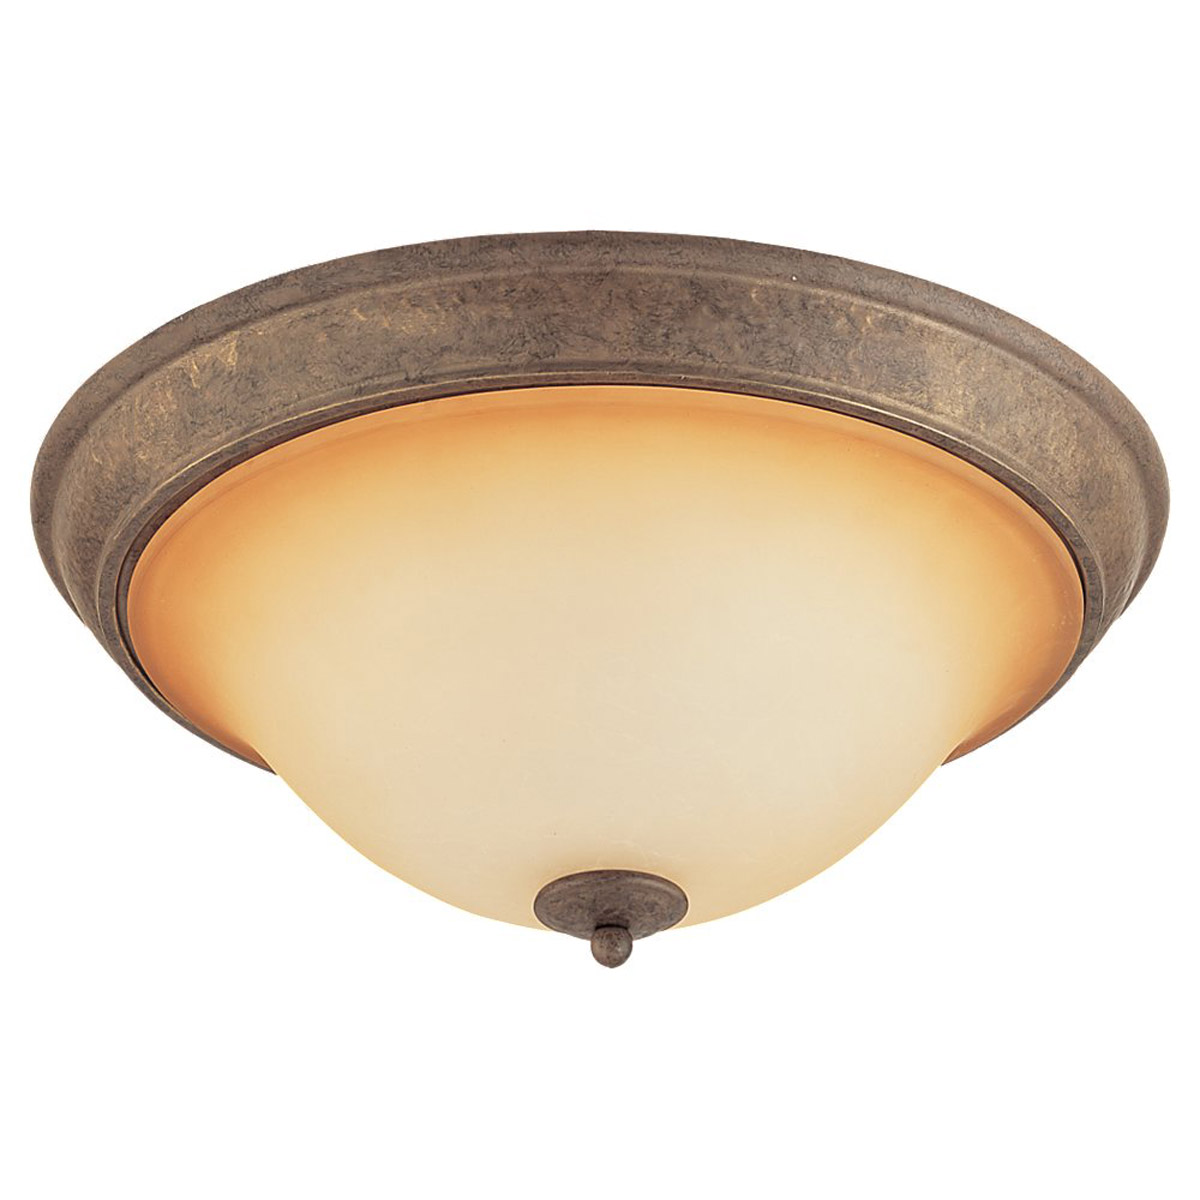 Sea Gull Lighting Brandywine 4 Light Flush Mount in Antique Bronze 79331BLE-71 photo